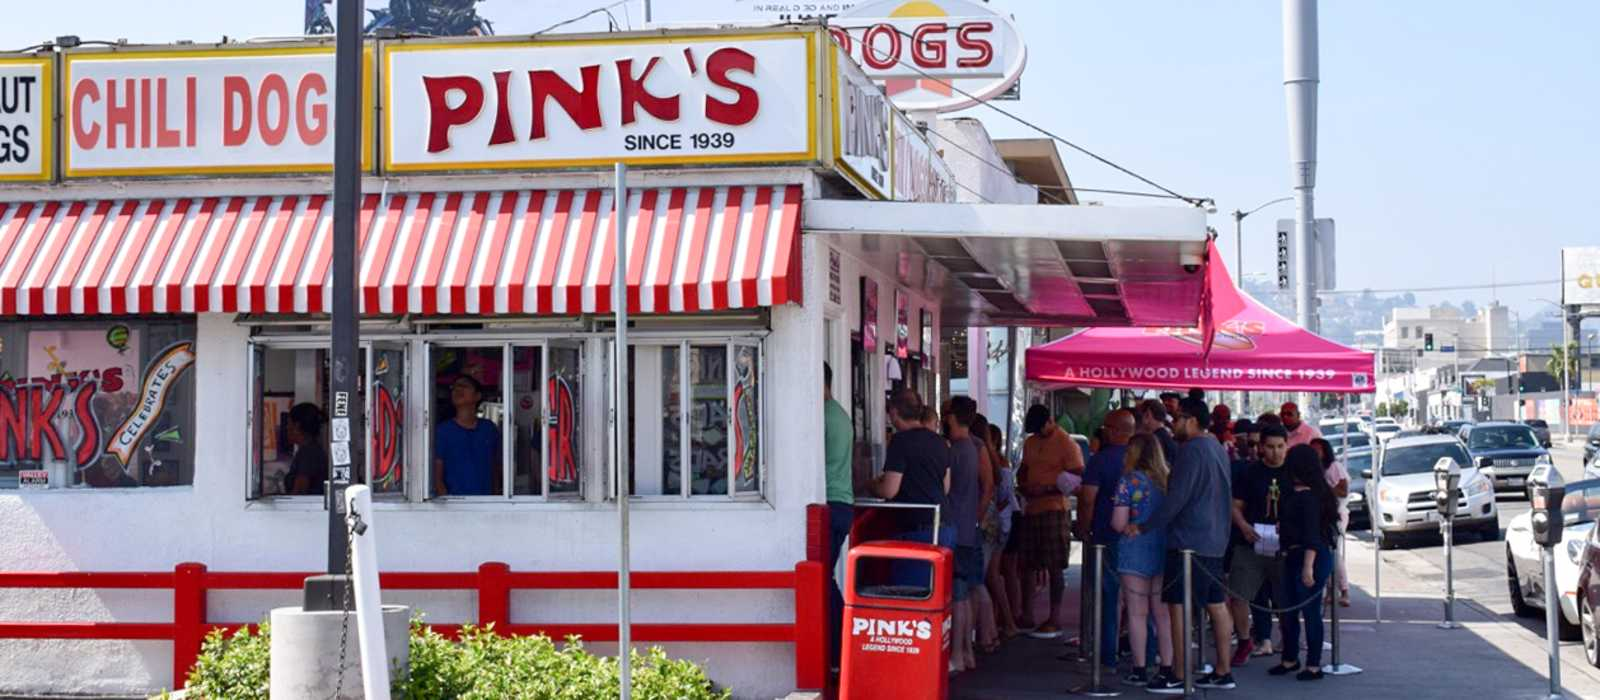 Pink's Hot Dogs in L. A.